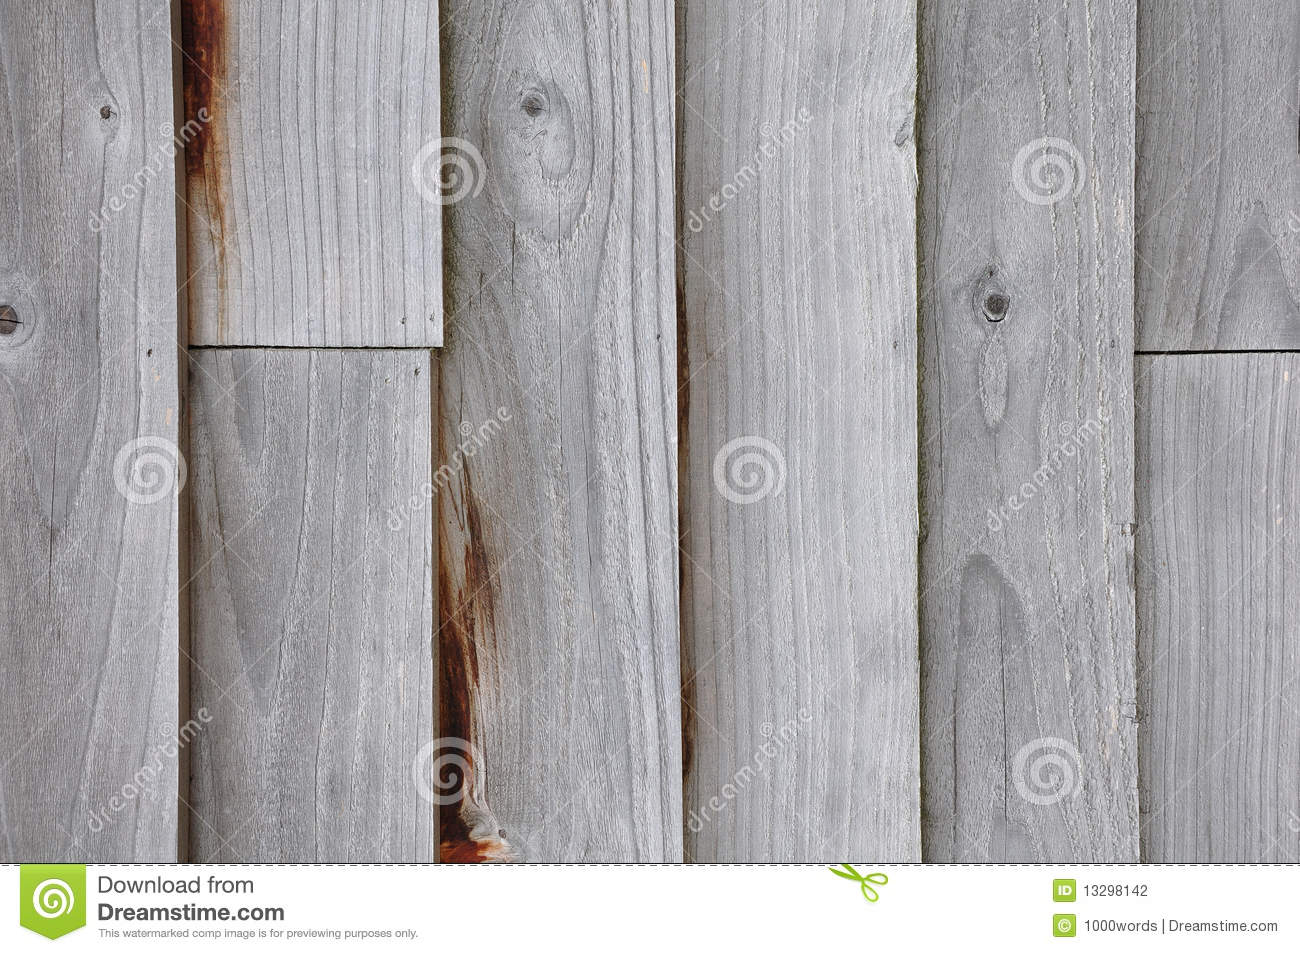 Amazing photo of Abstract Detail of Wooden Panels with Plenty of Copy Space. with #82A229 color and 1300x953 pixels